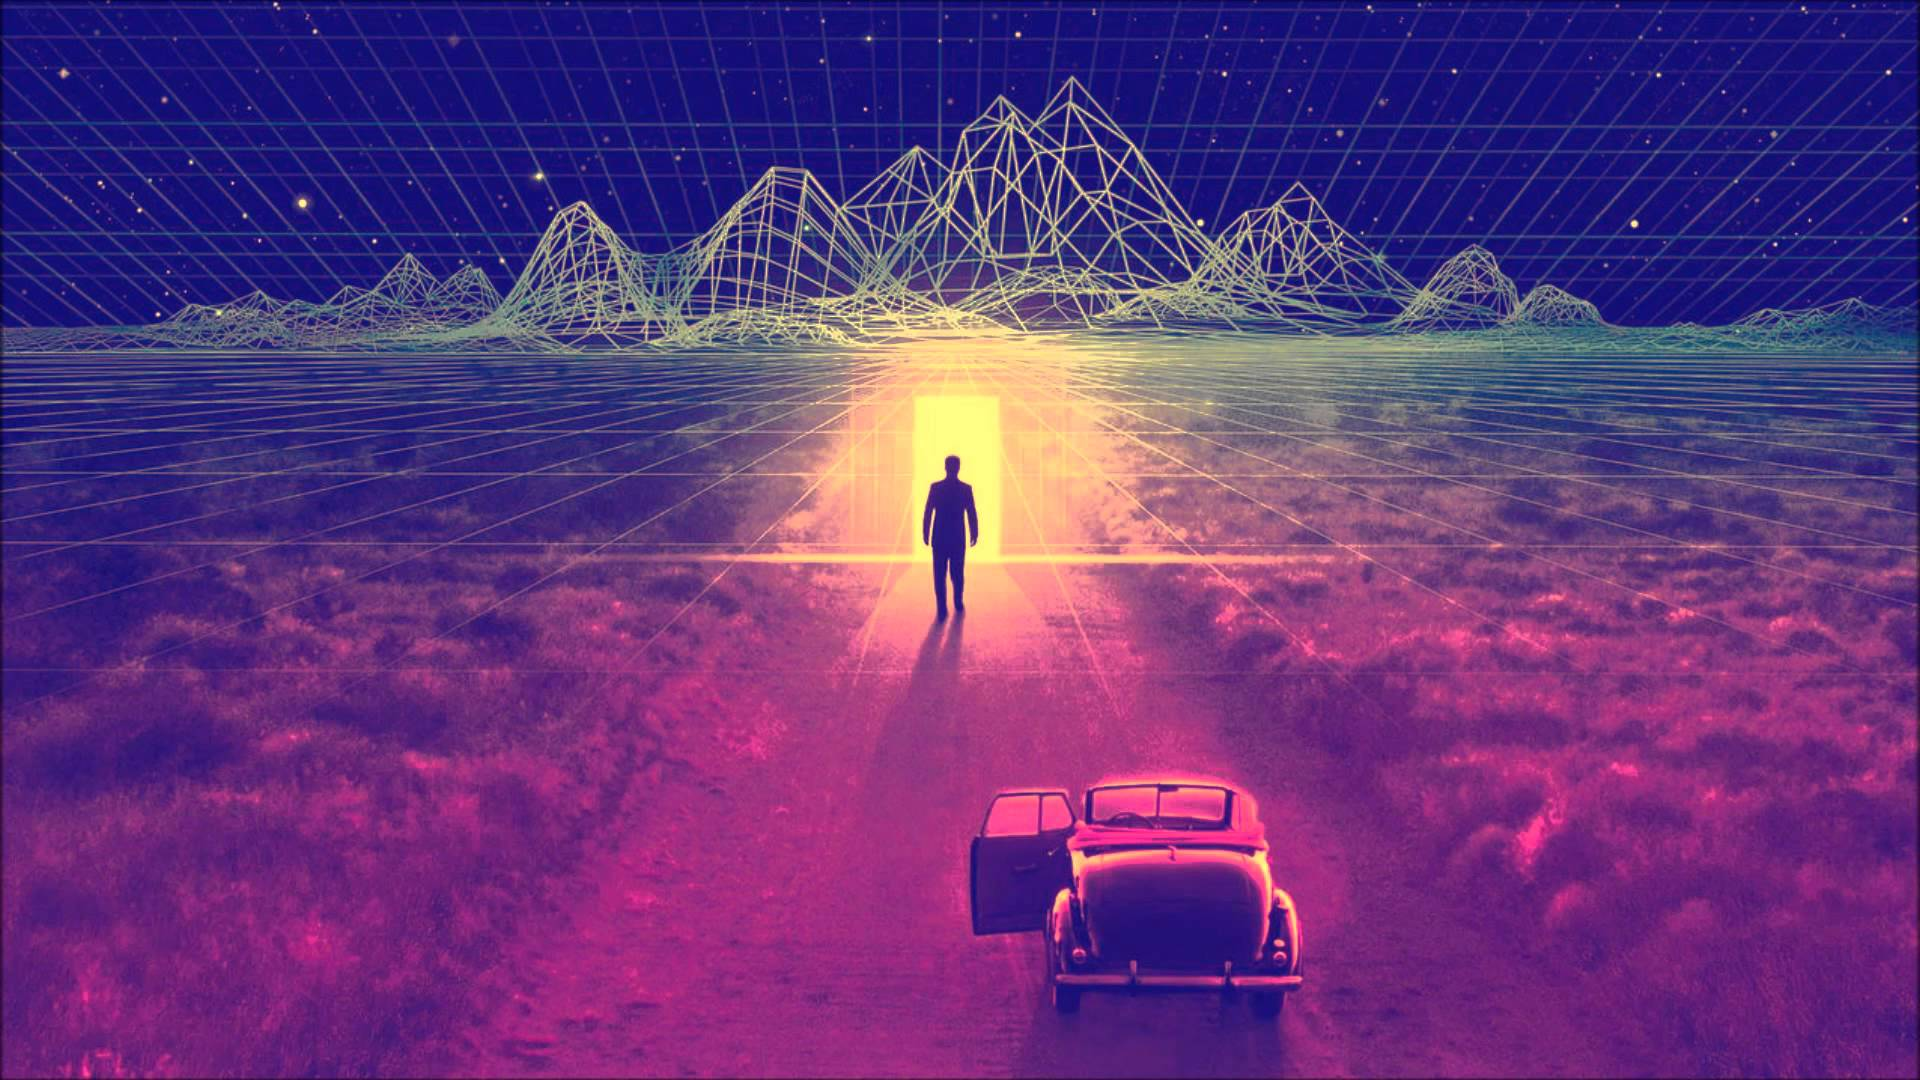 Synthwave Images